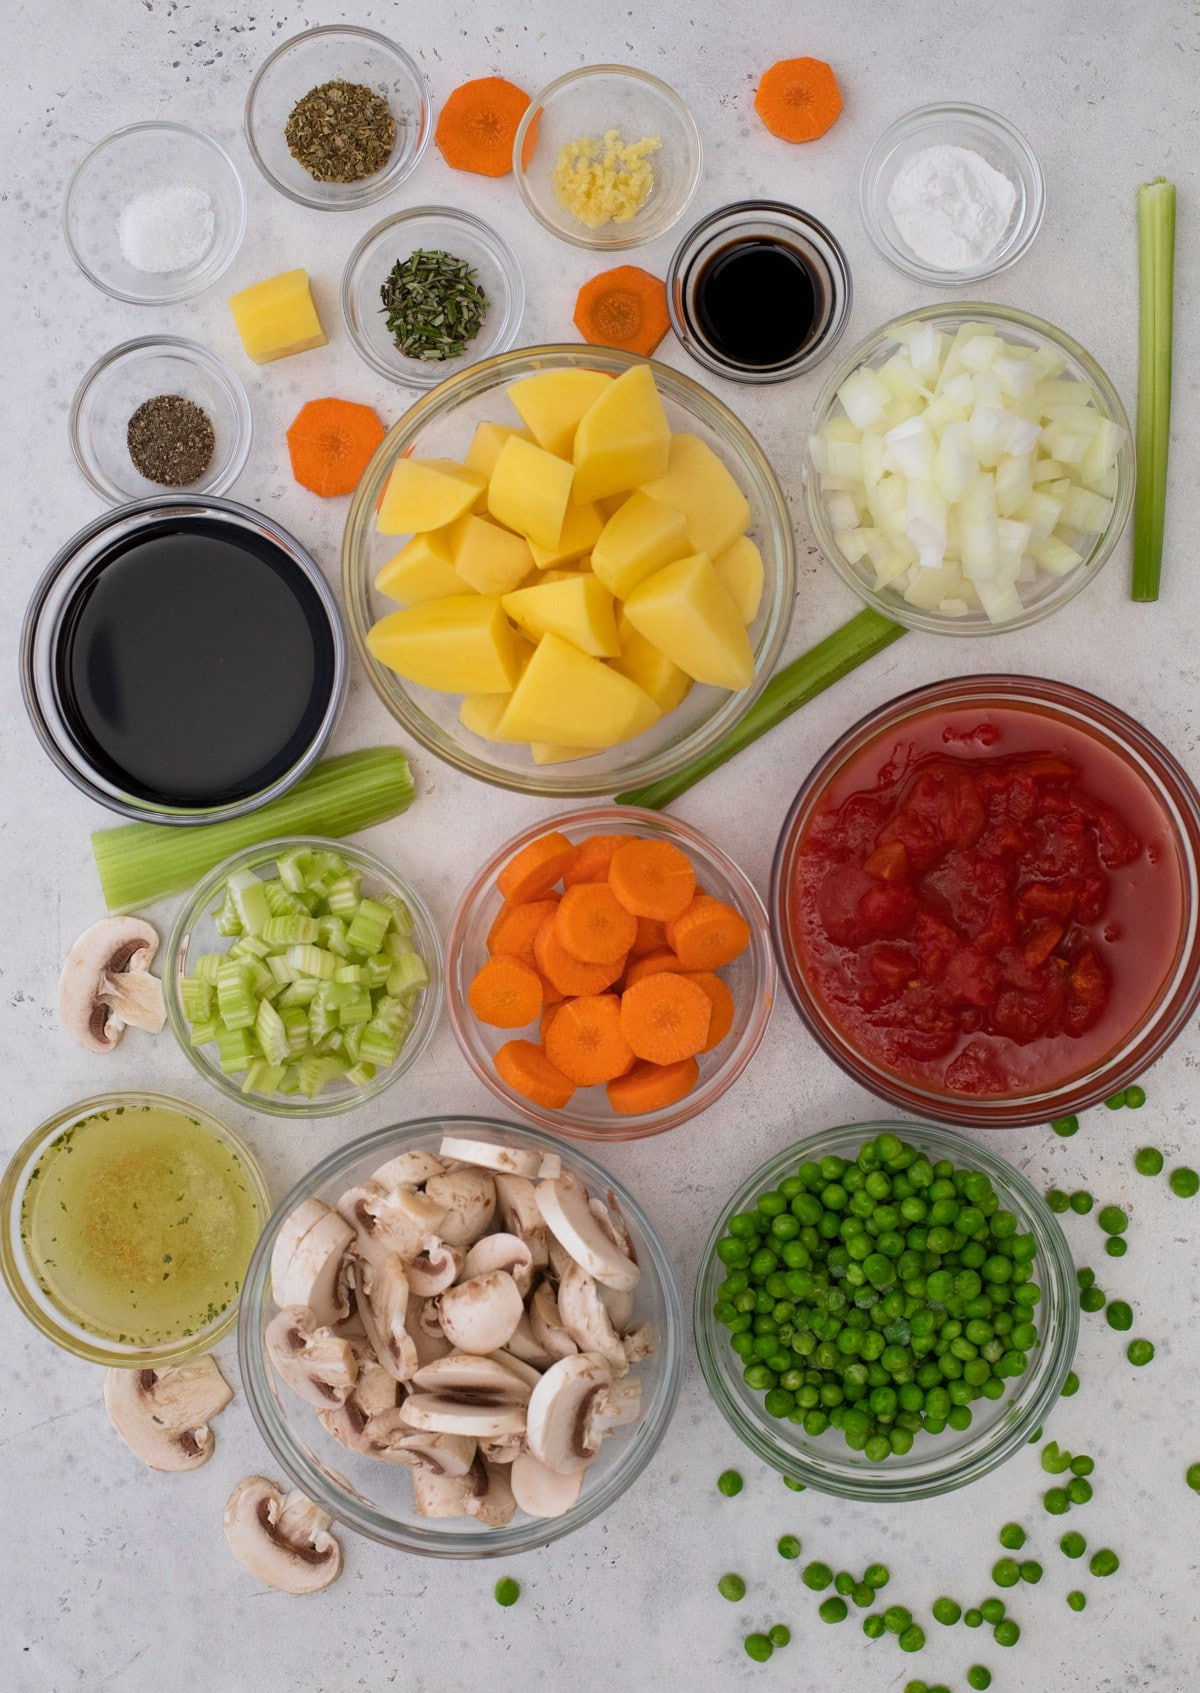 Ingredients for vegetable soup in glass bowls on white table